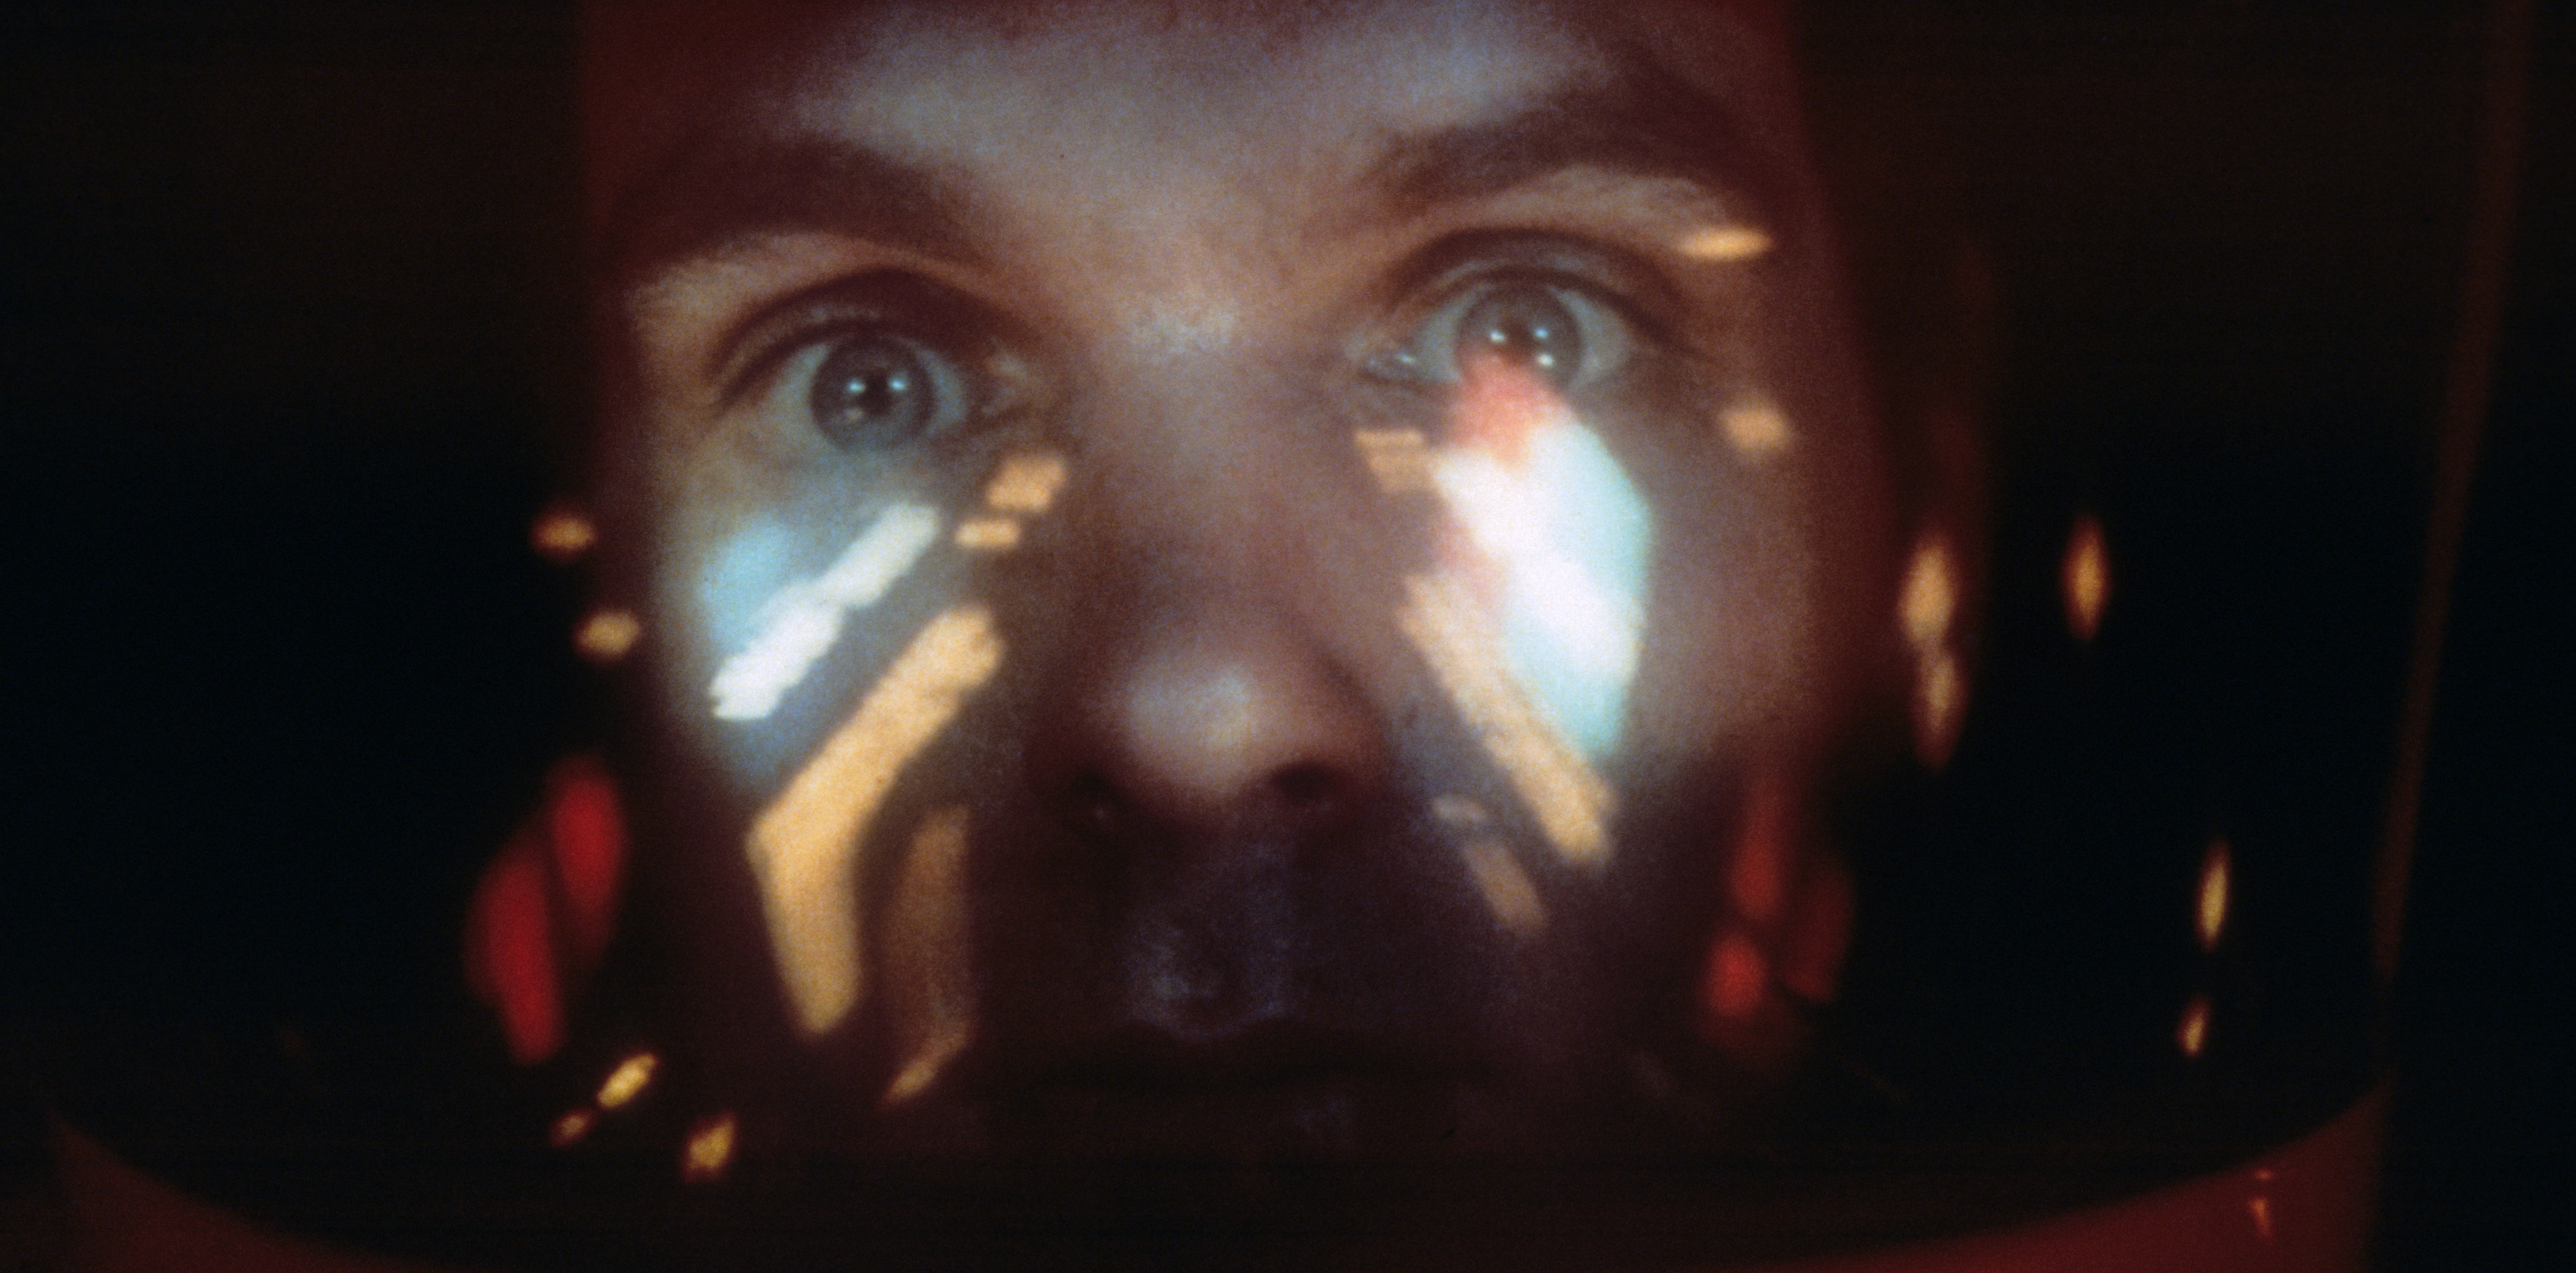 Keir Dullea in a scene from the film '2001: A Space Odyssey', 1968. (Photo by Metro-Goldwyn-Mayer/Getty Images)